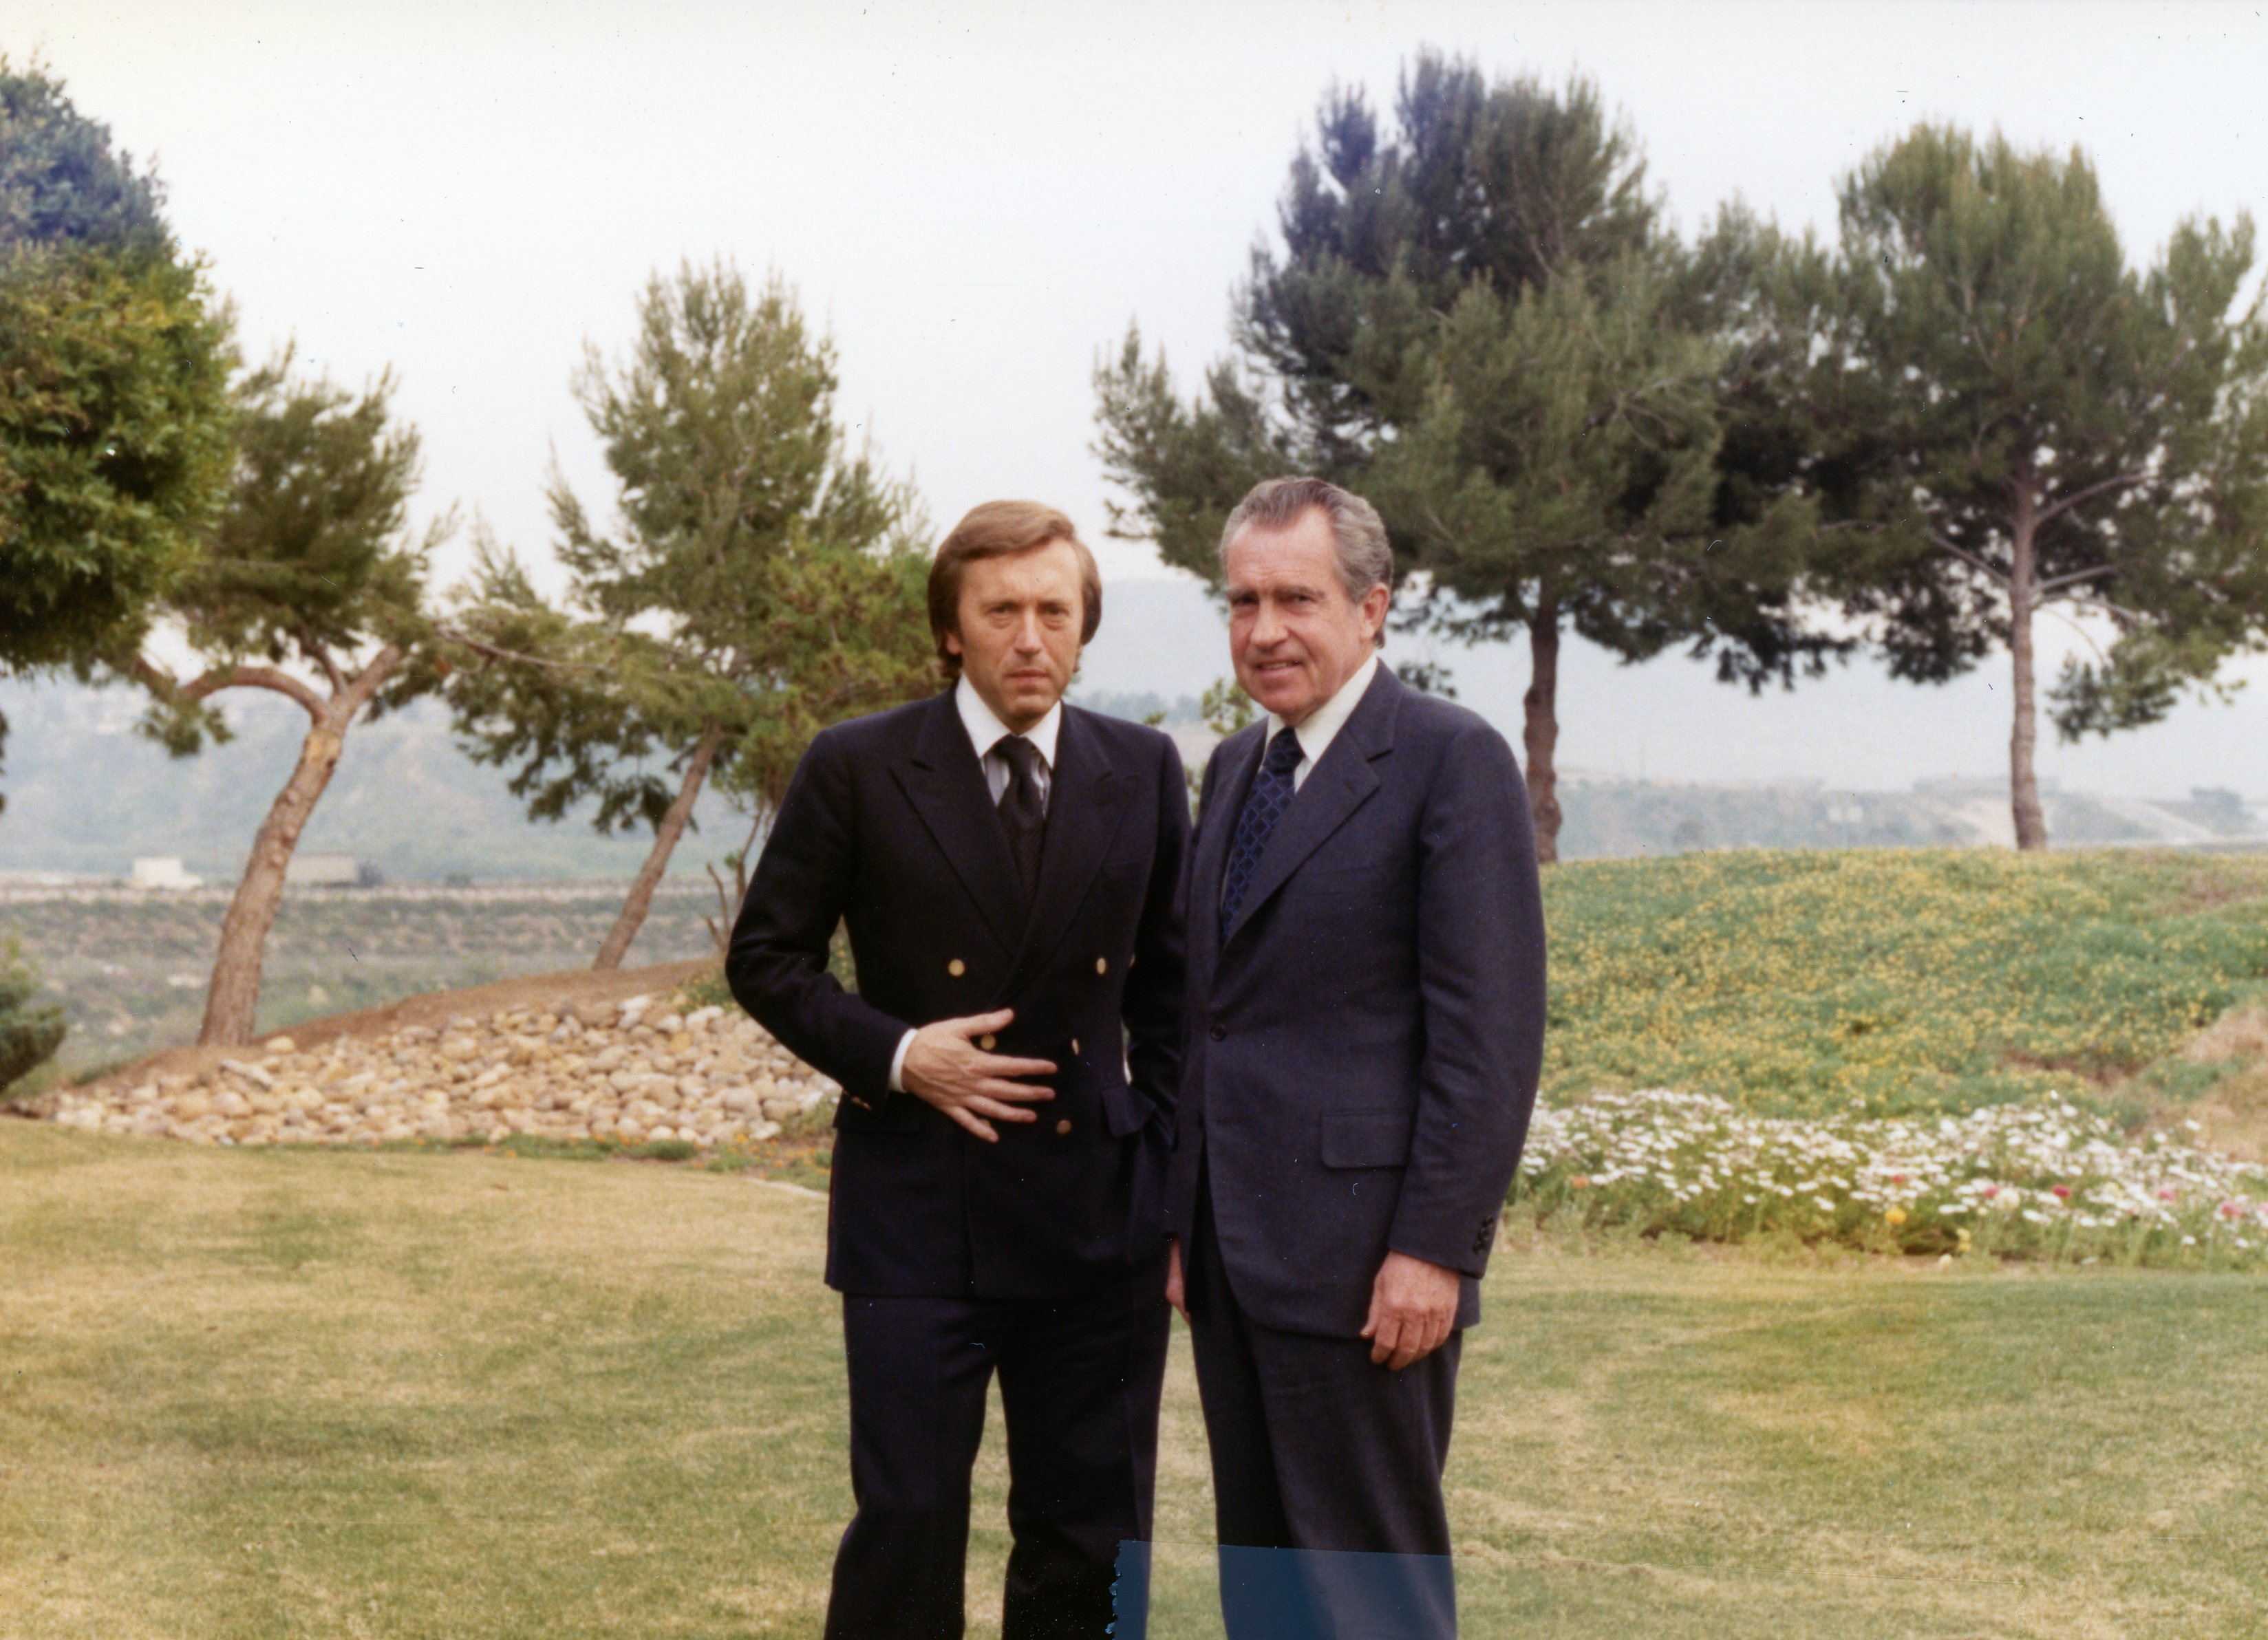 Richard Nixon and David Frost